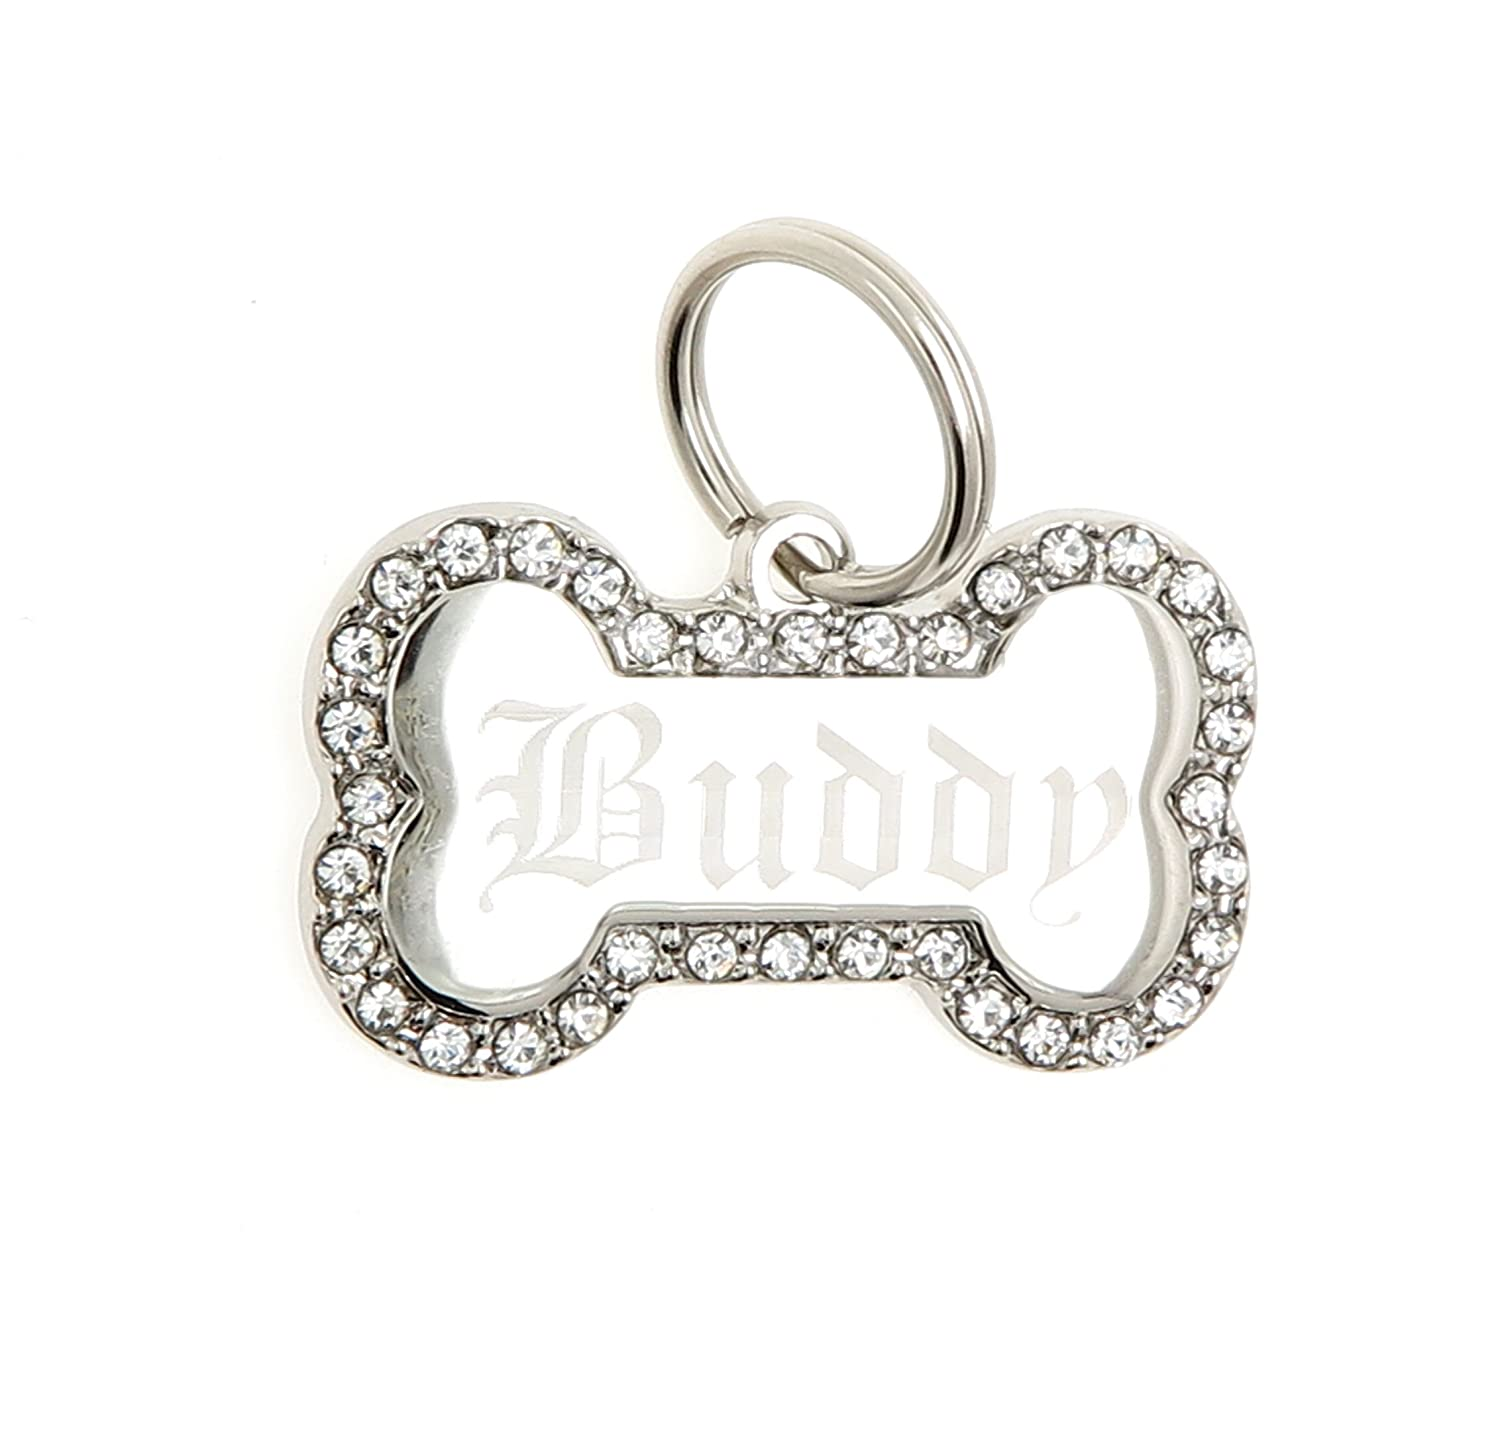 Yippo Accessories Custom Engraved Personalized Stainless Steel Bone Shape Swaroski Zirconia Dog Pet ID Jewelry Bling Tag